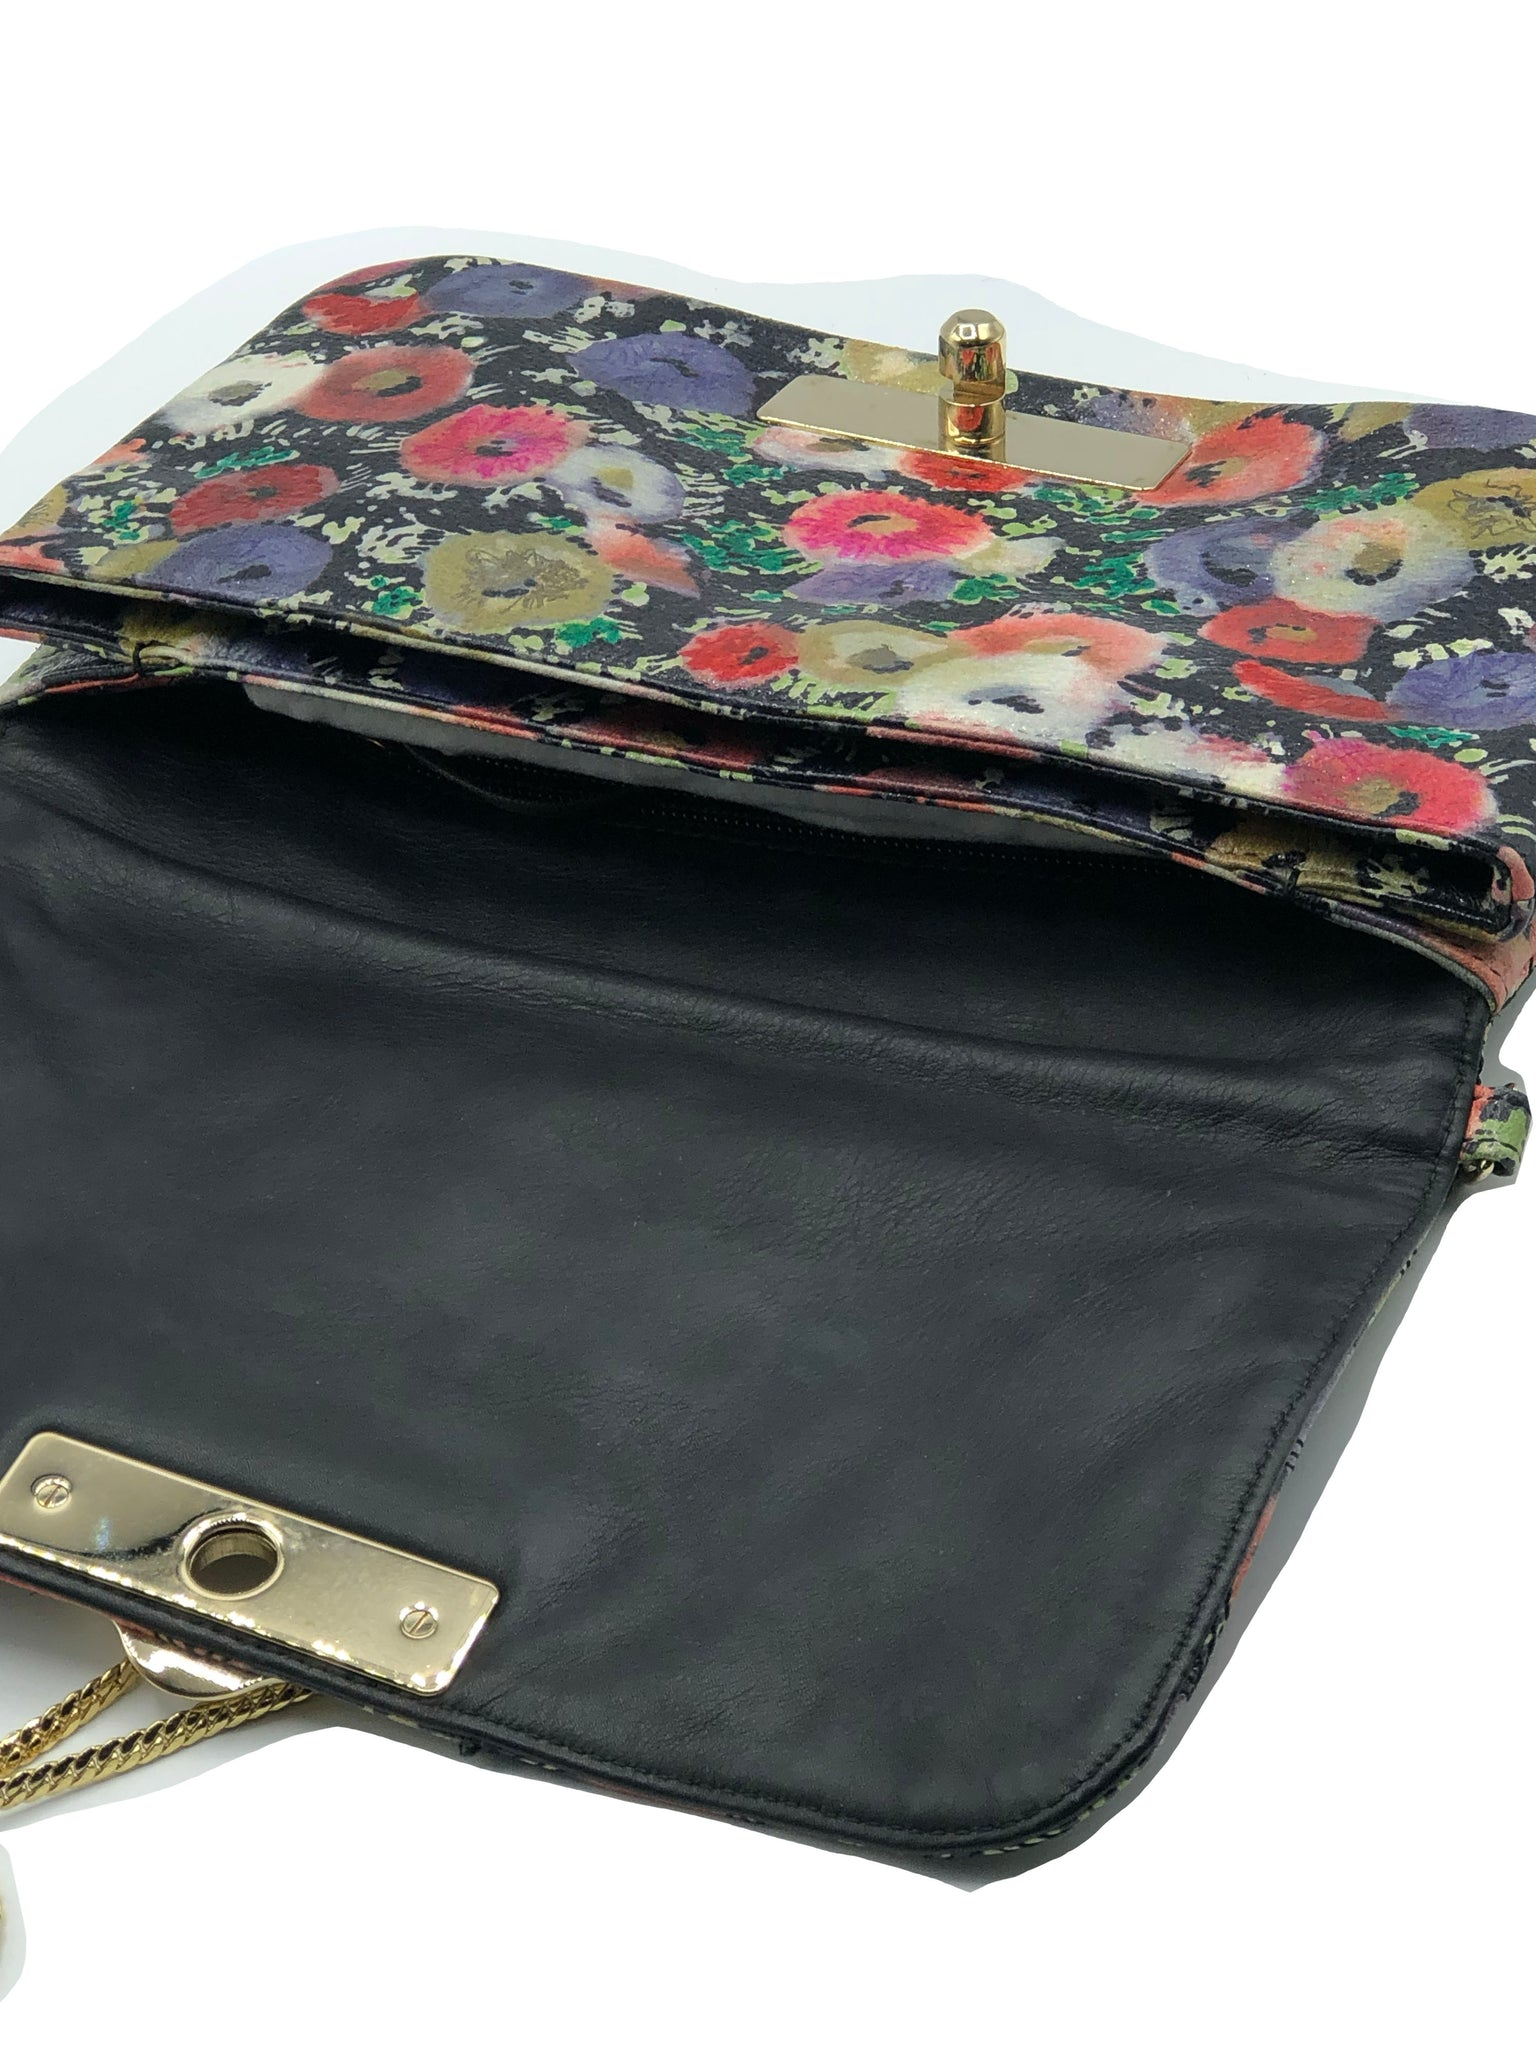 Bally Leather Quilted Floral Shoulder Bag OPEN 3 of 5